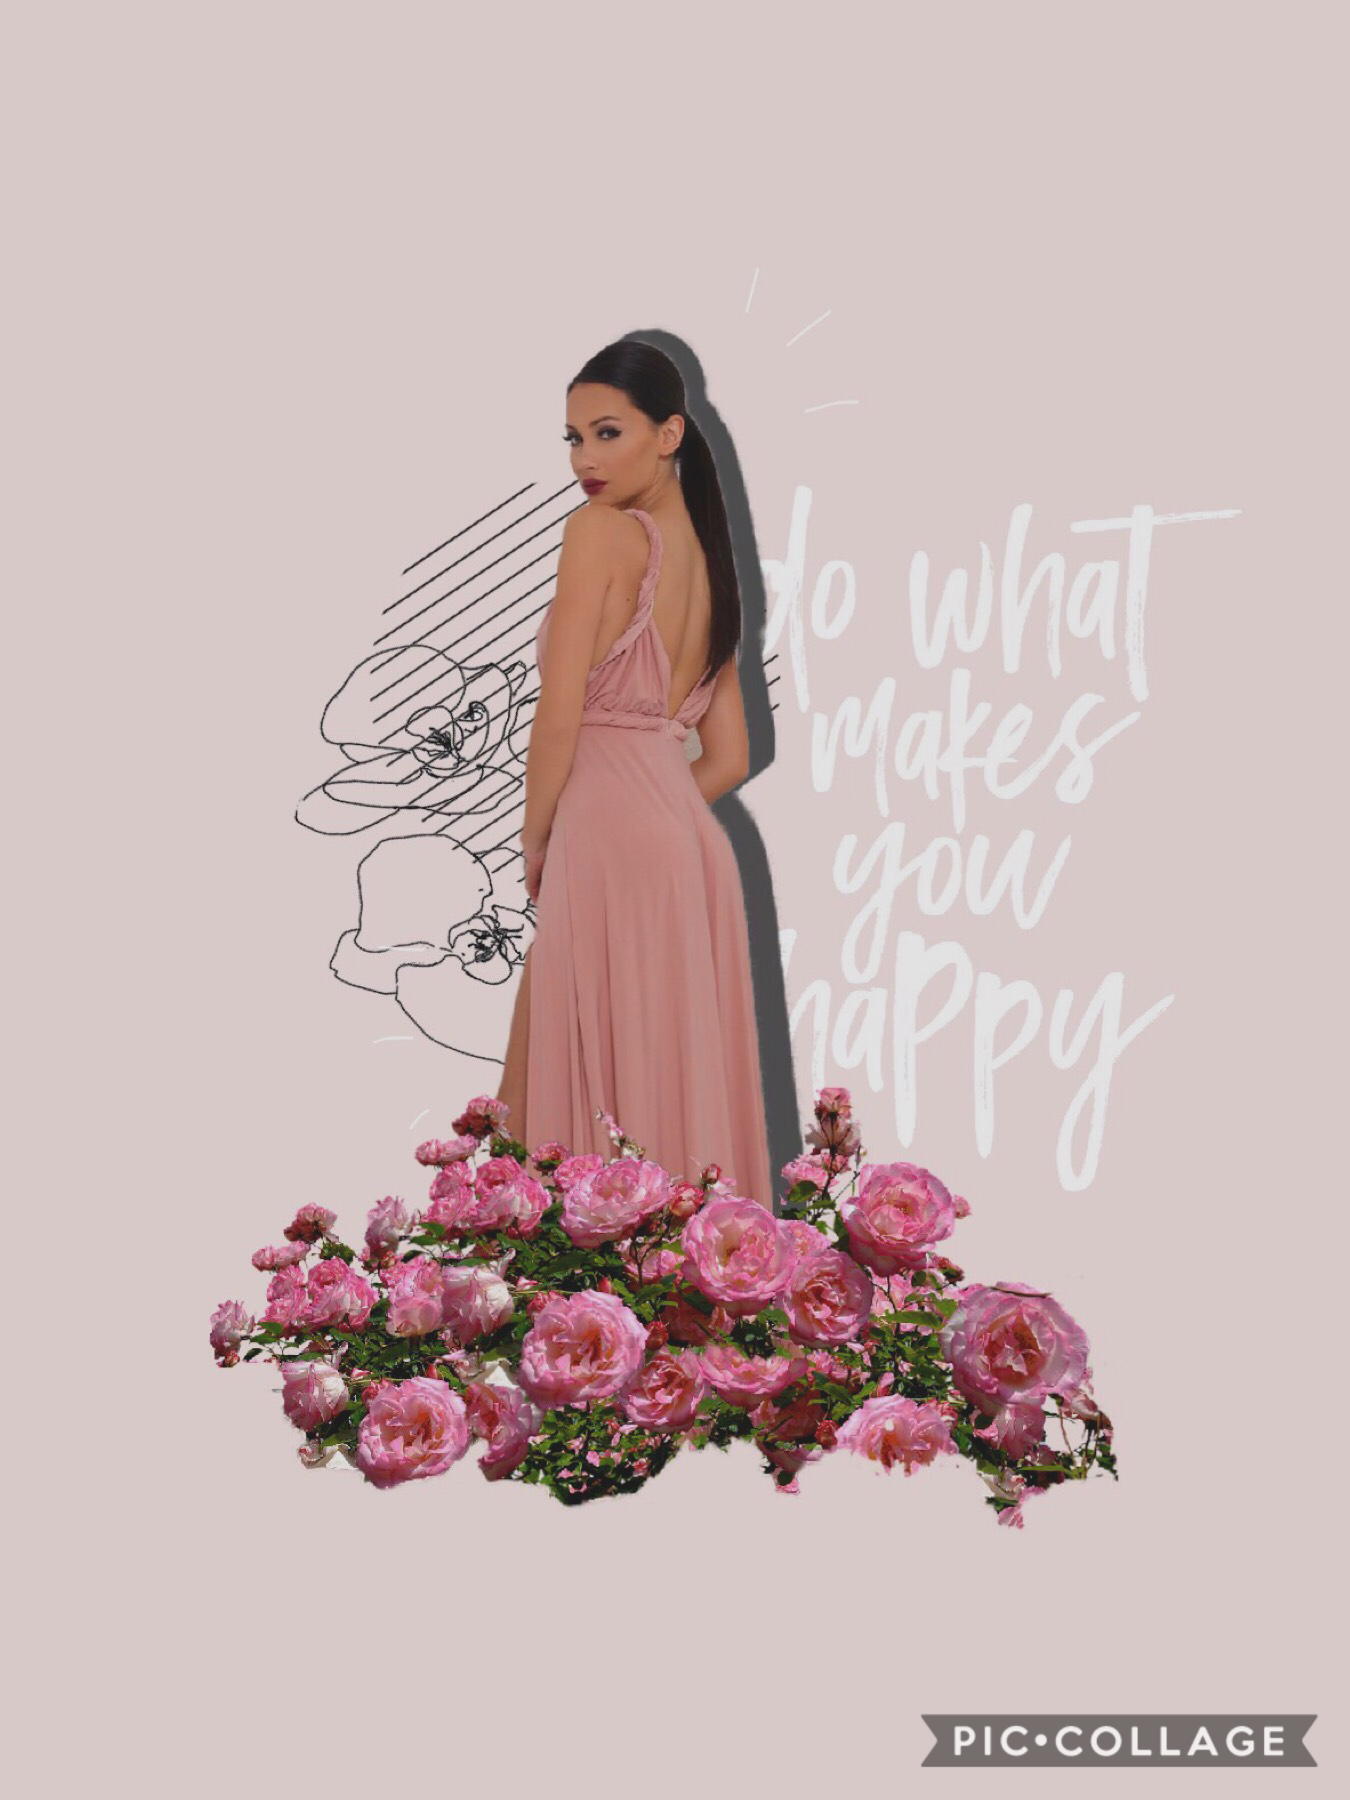 do what makes you happy | 4/8